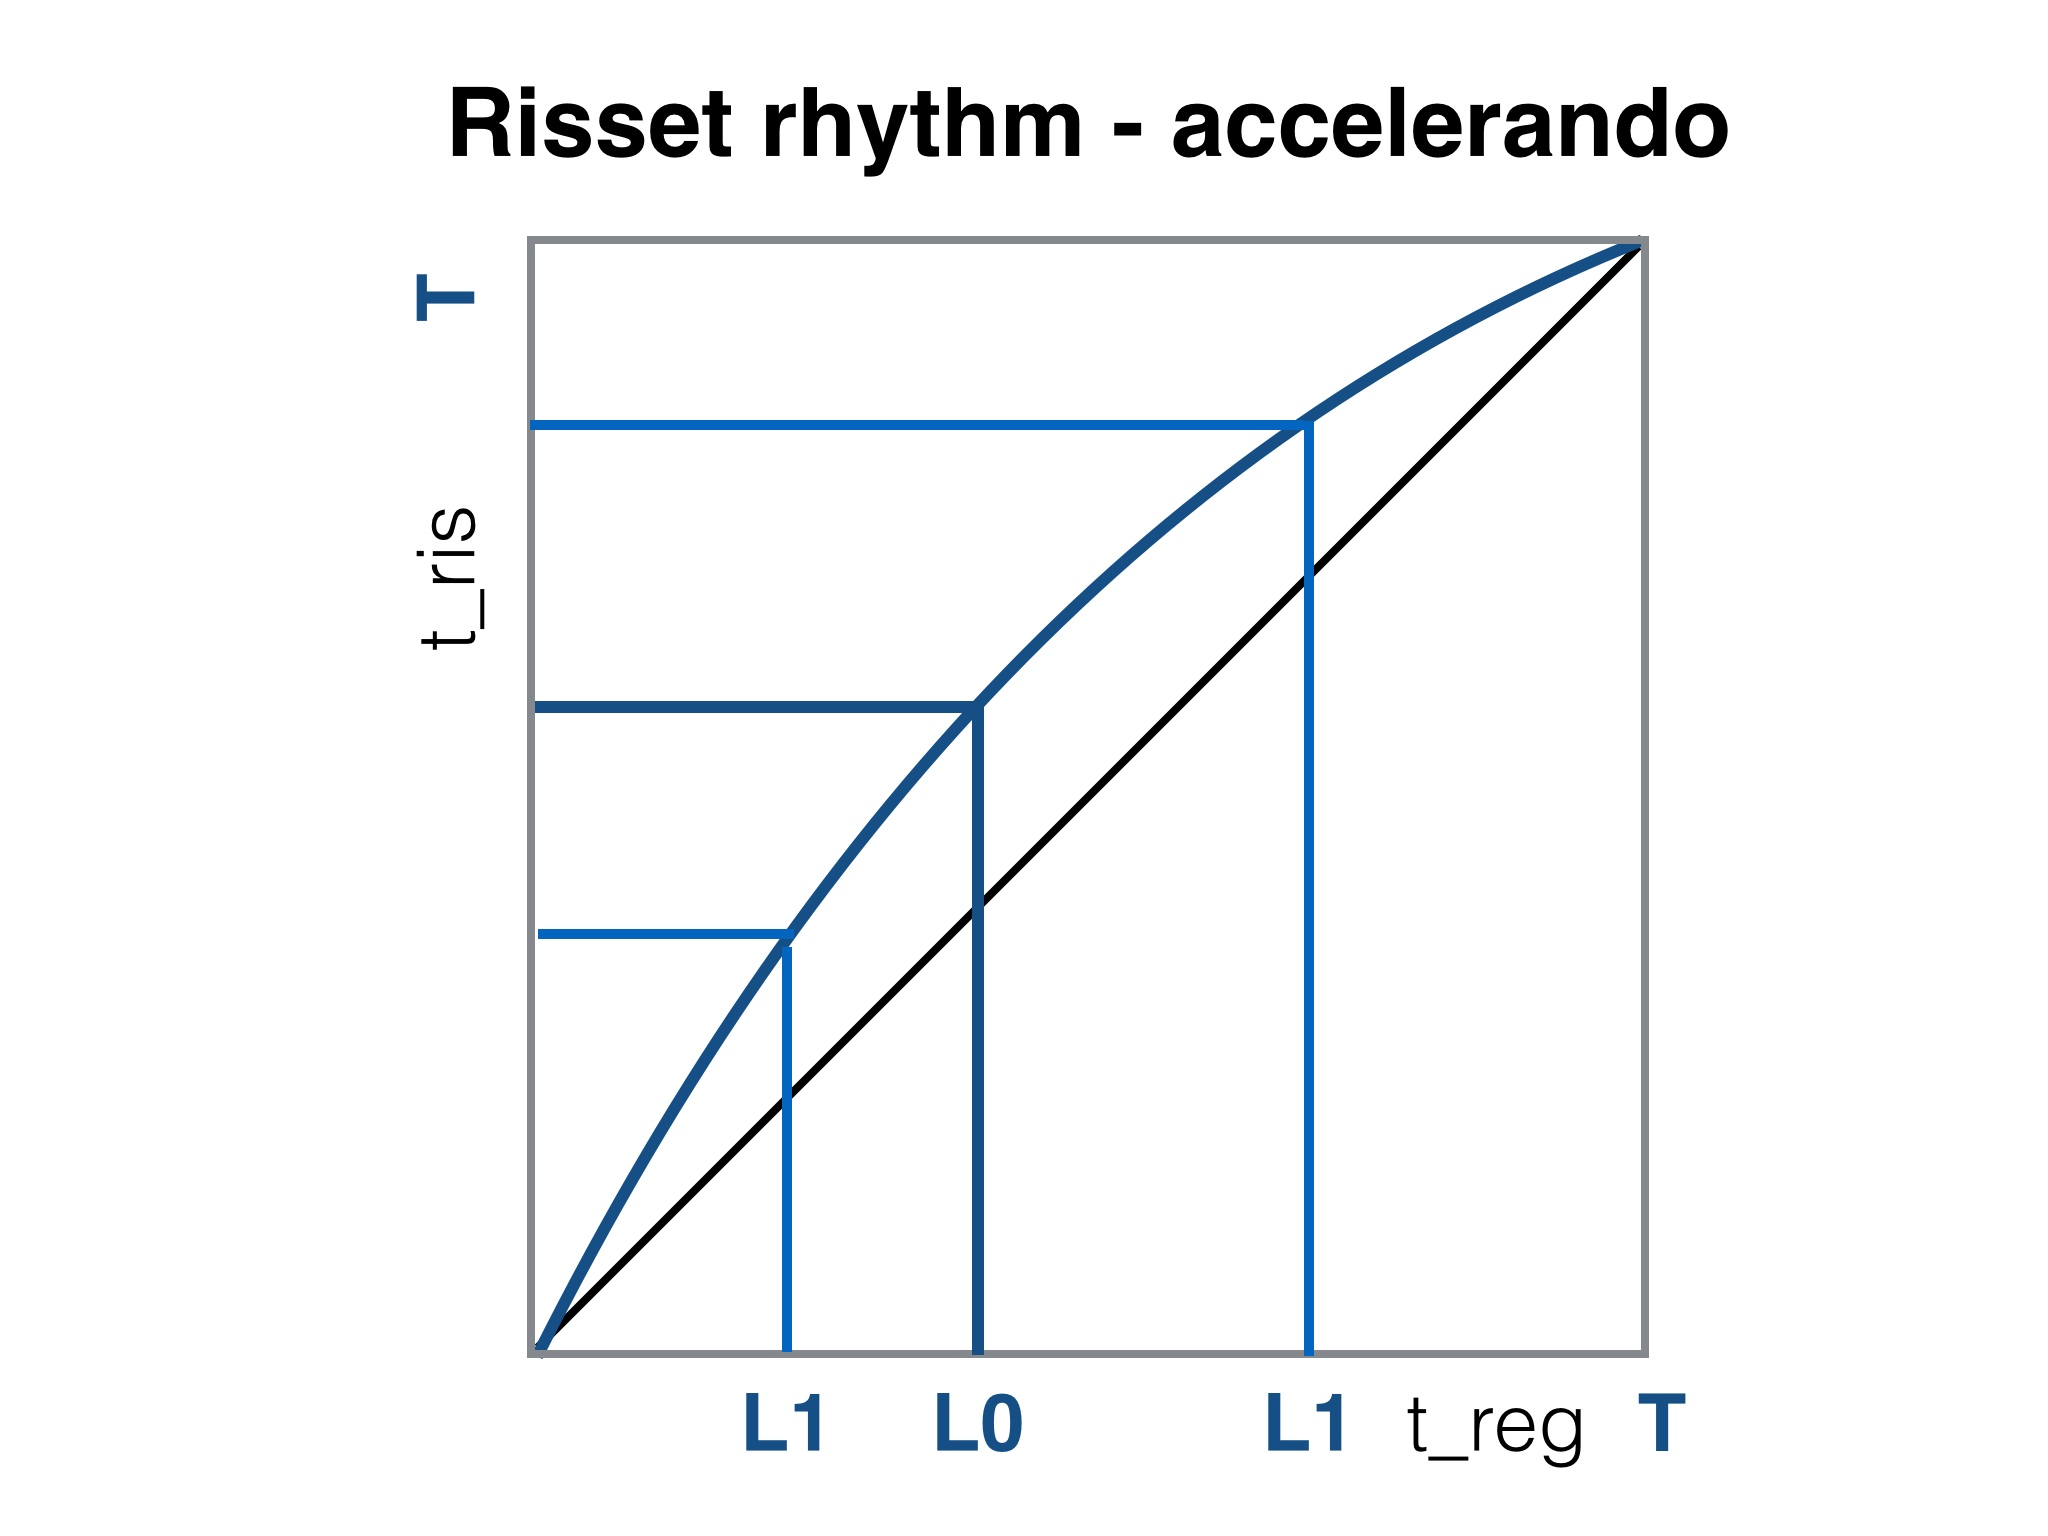 Risset rhythm logarithmic timing